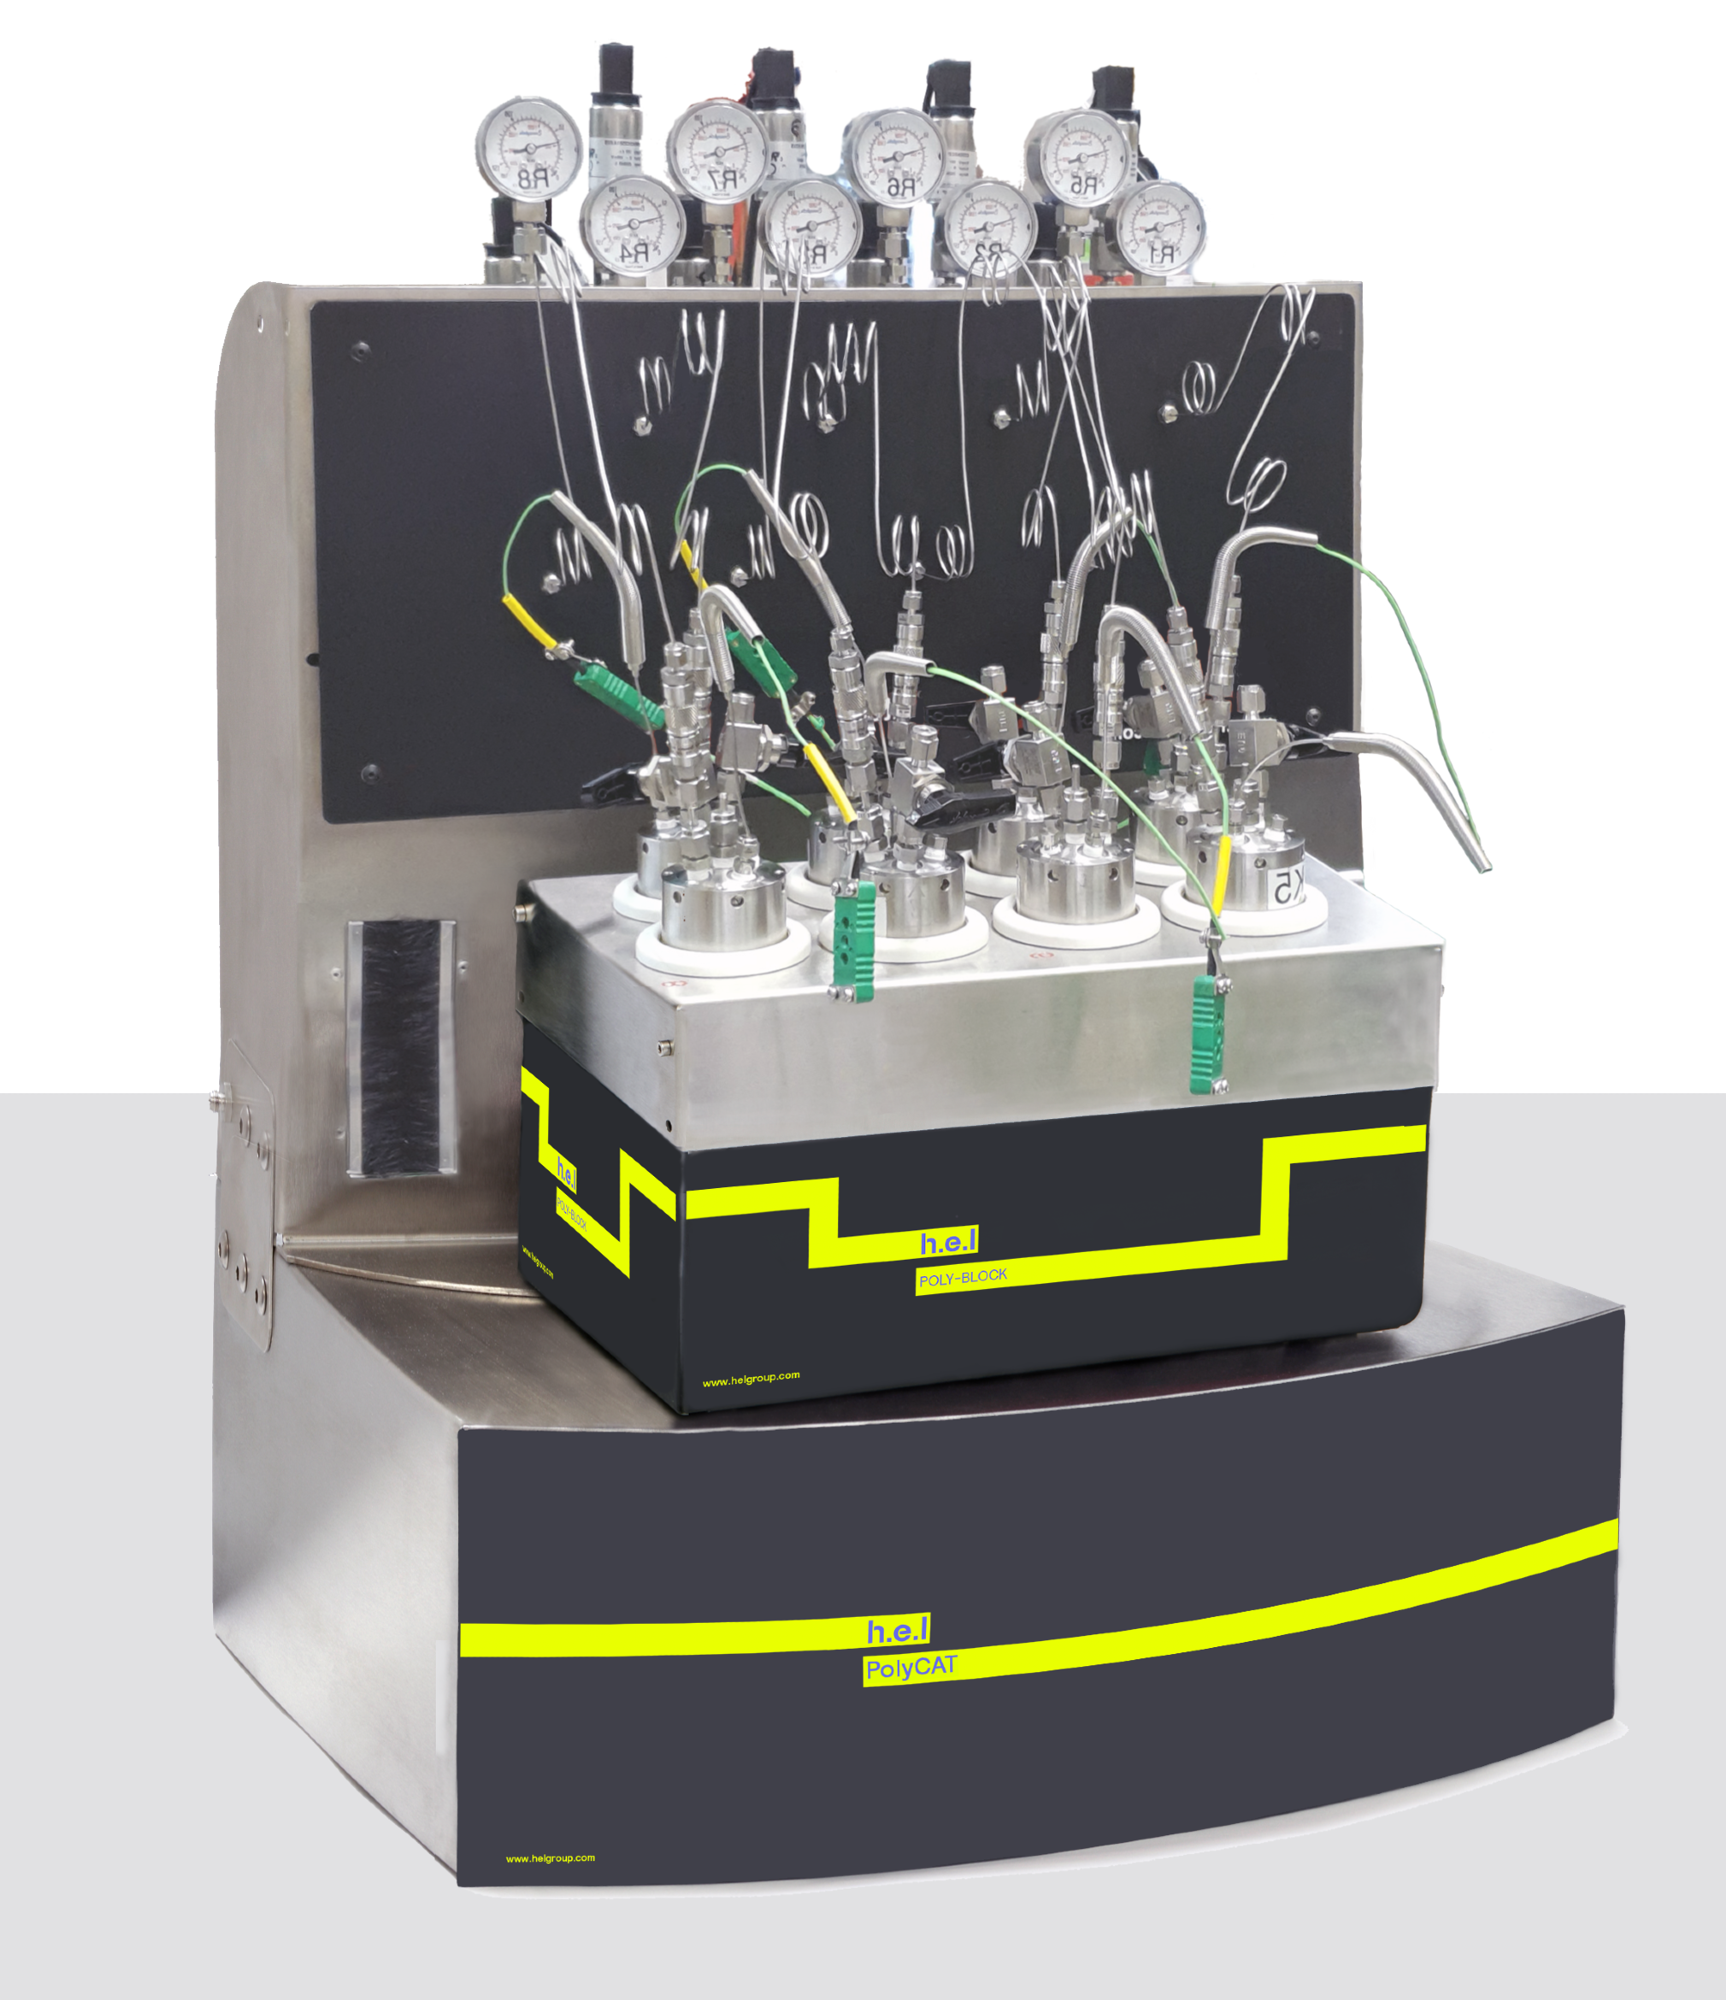 PolyCAT 8: Bench-top, 8-reactor, automated parallel catalyst screening platform